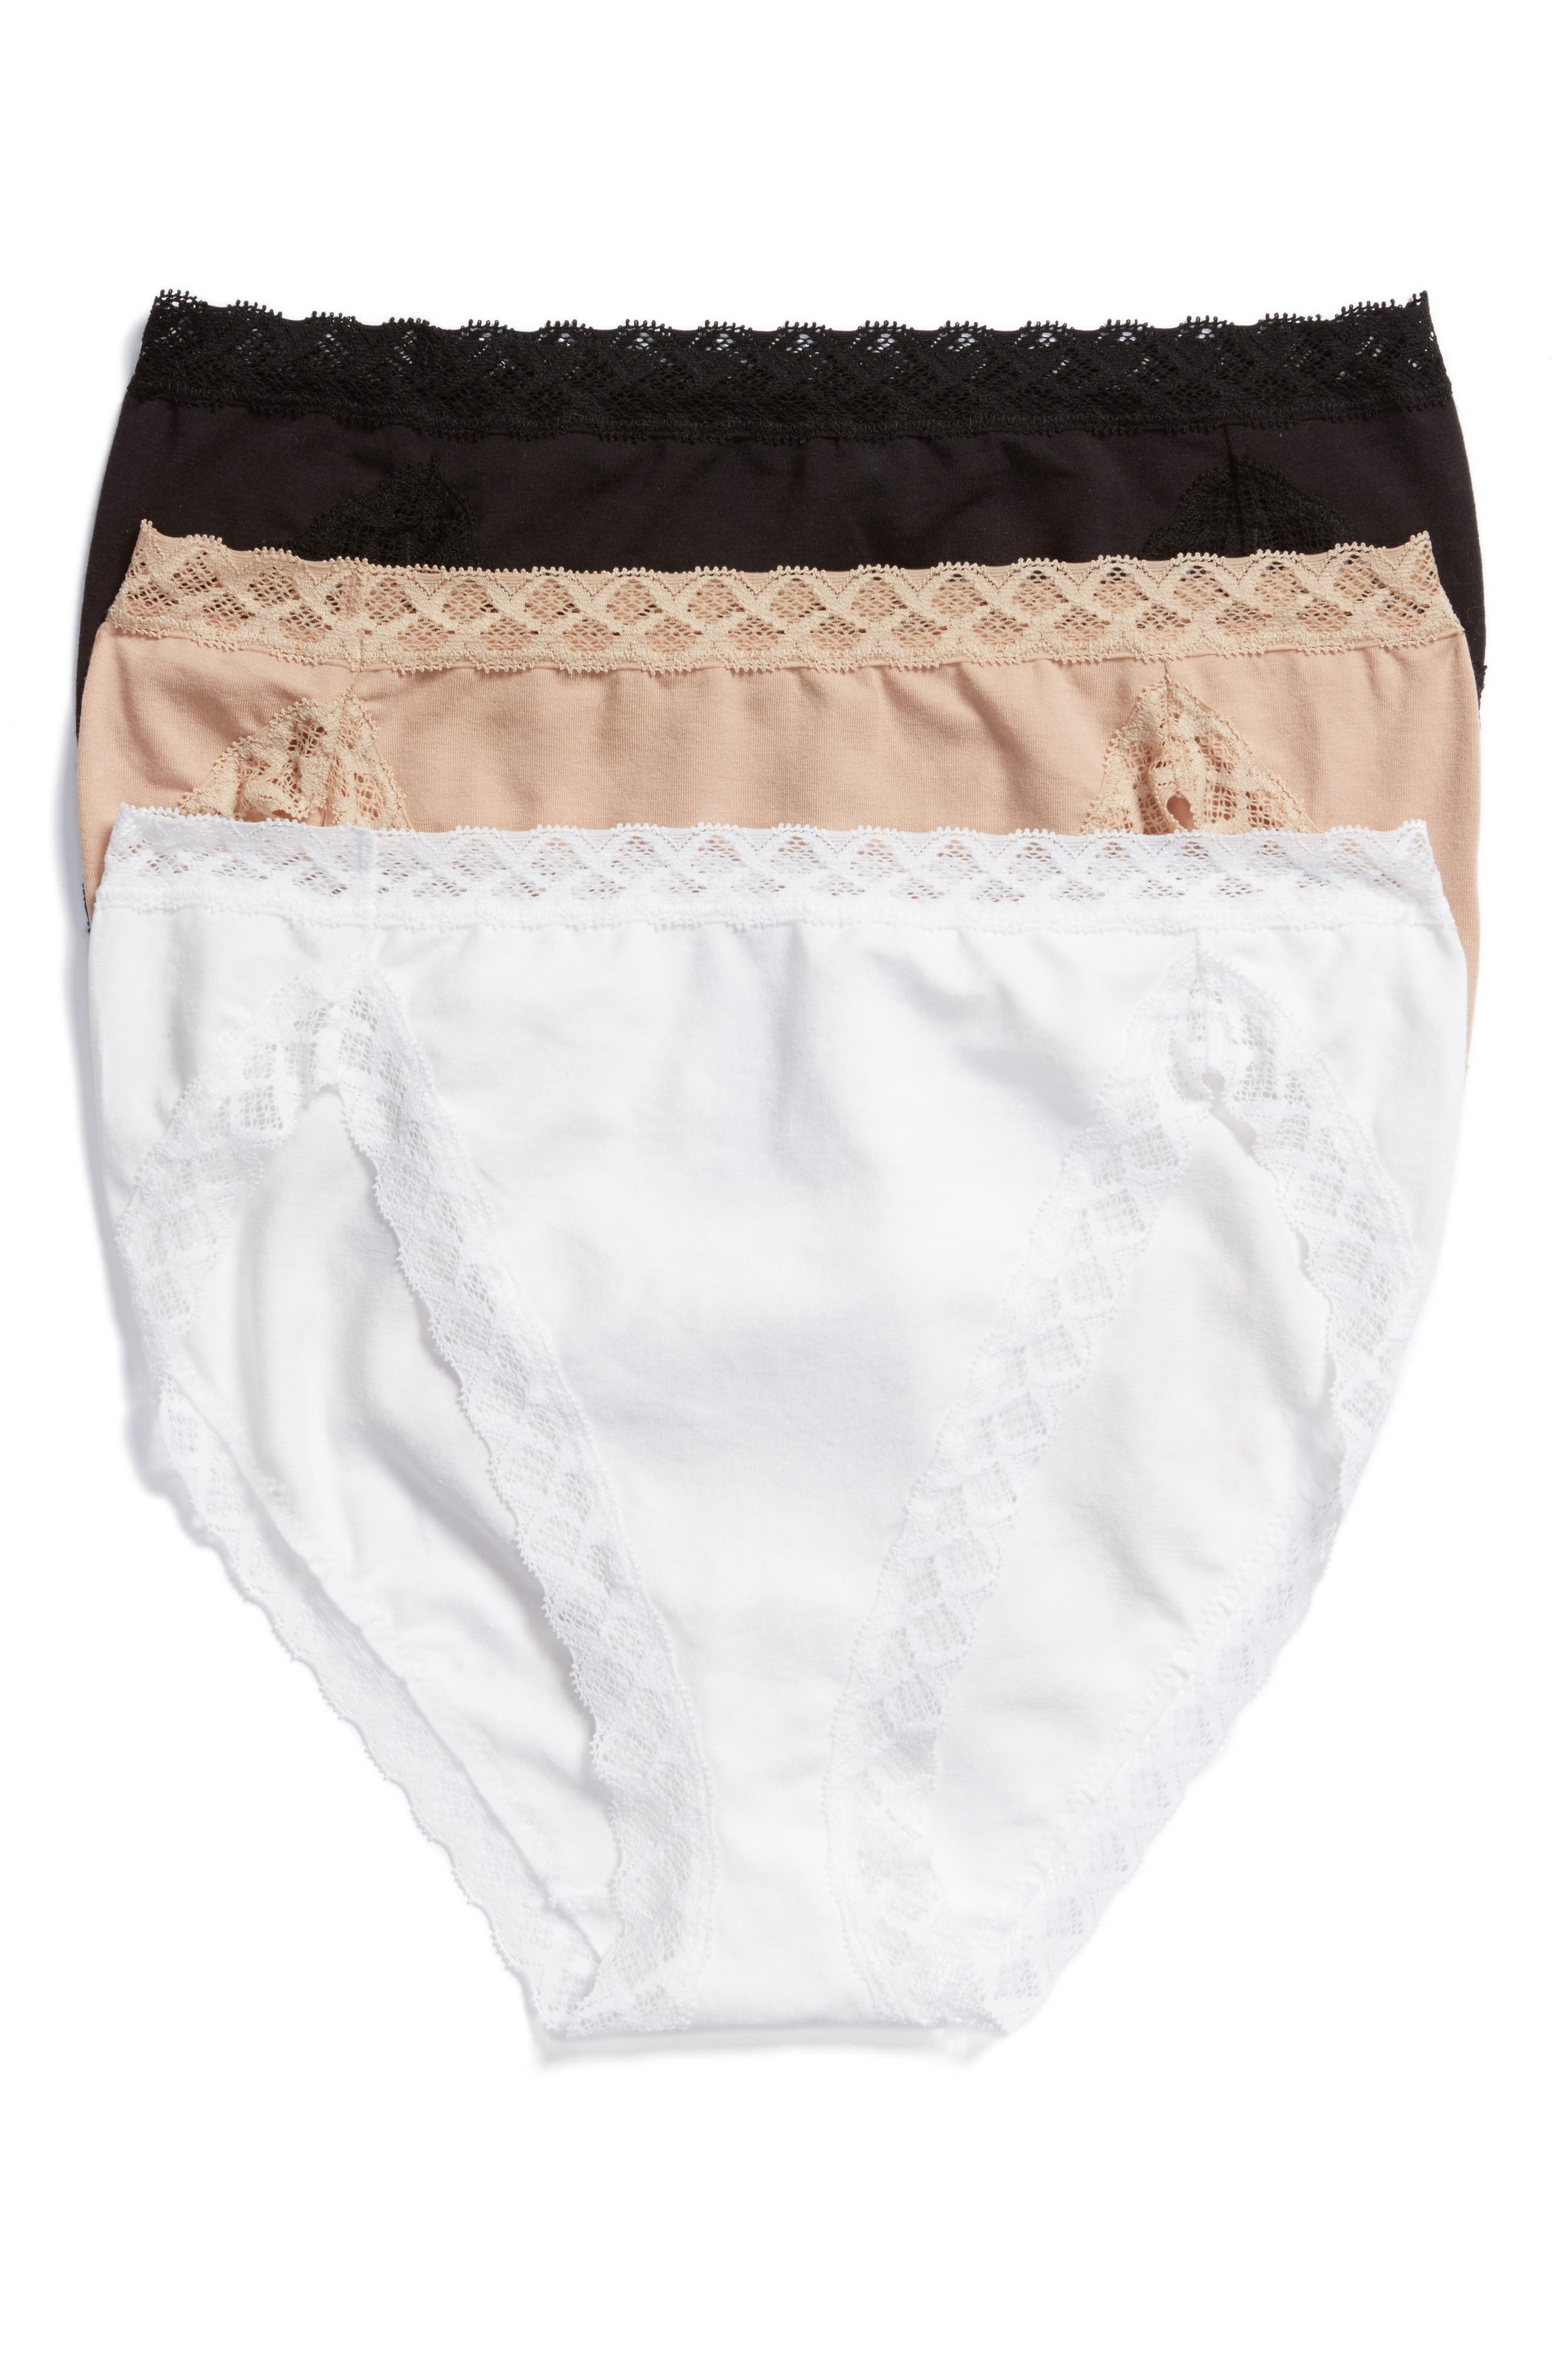 Natori 'Bliss' French Cut Briefs (3-Pack)